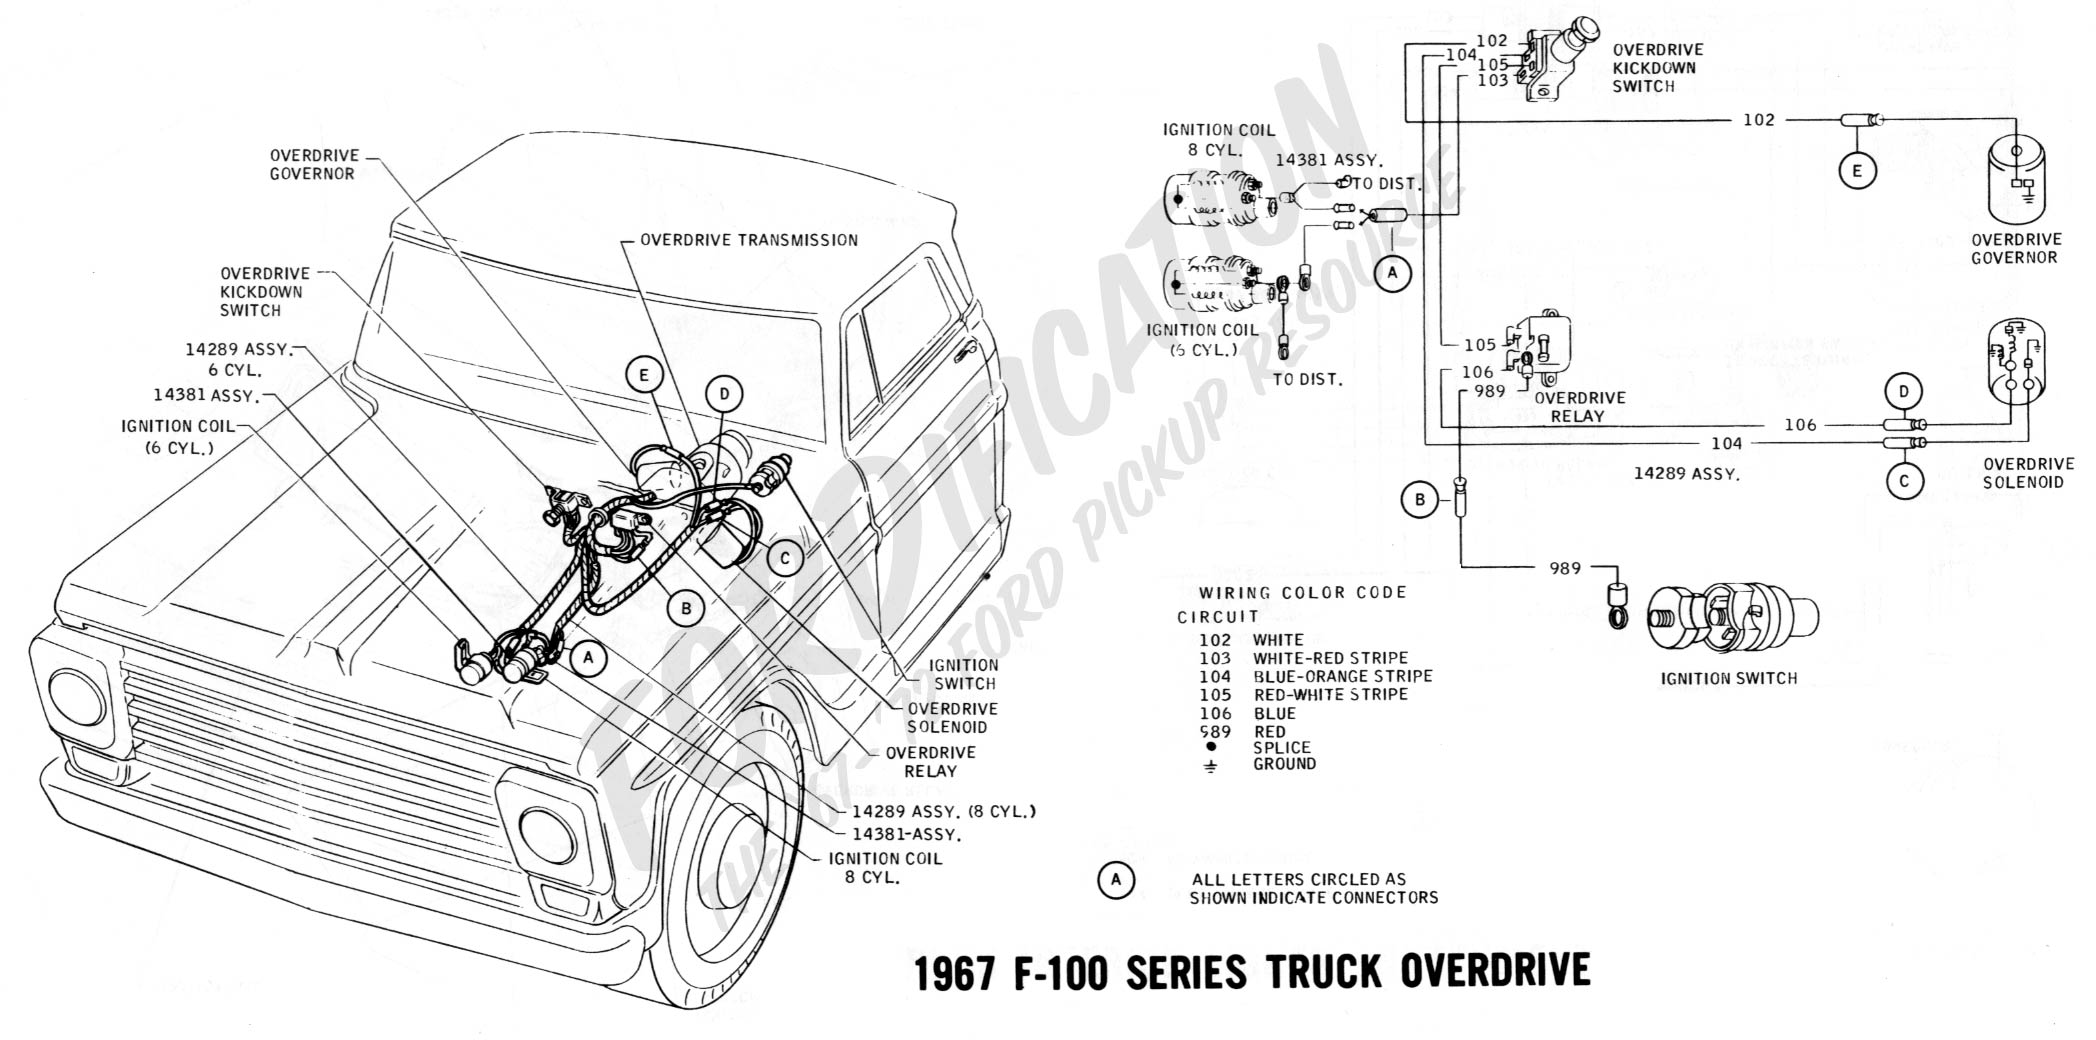 wiring 1967overdrive2 ford truck technical drawings and schematics section h wiring 1966 ford truck wiring diagram at n-0.co